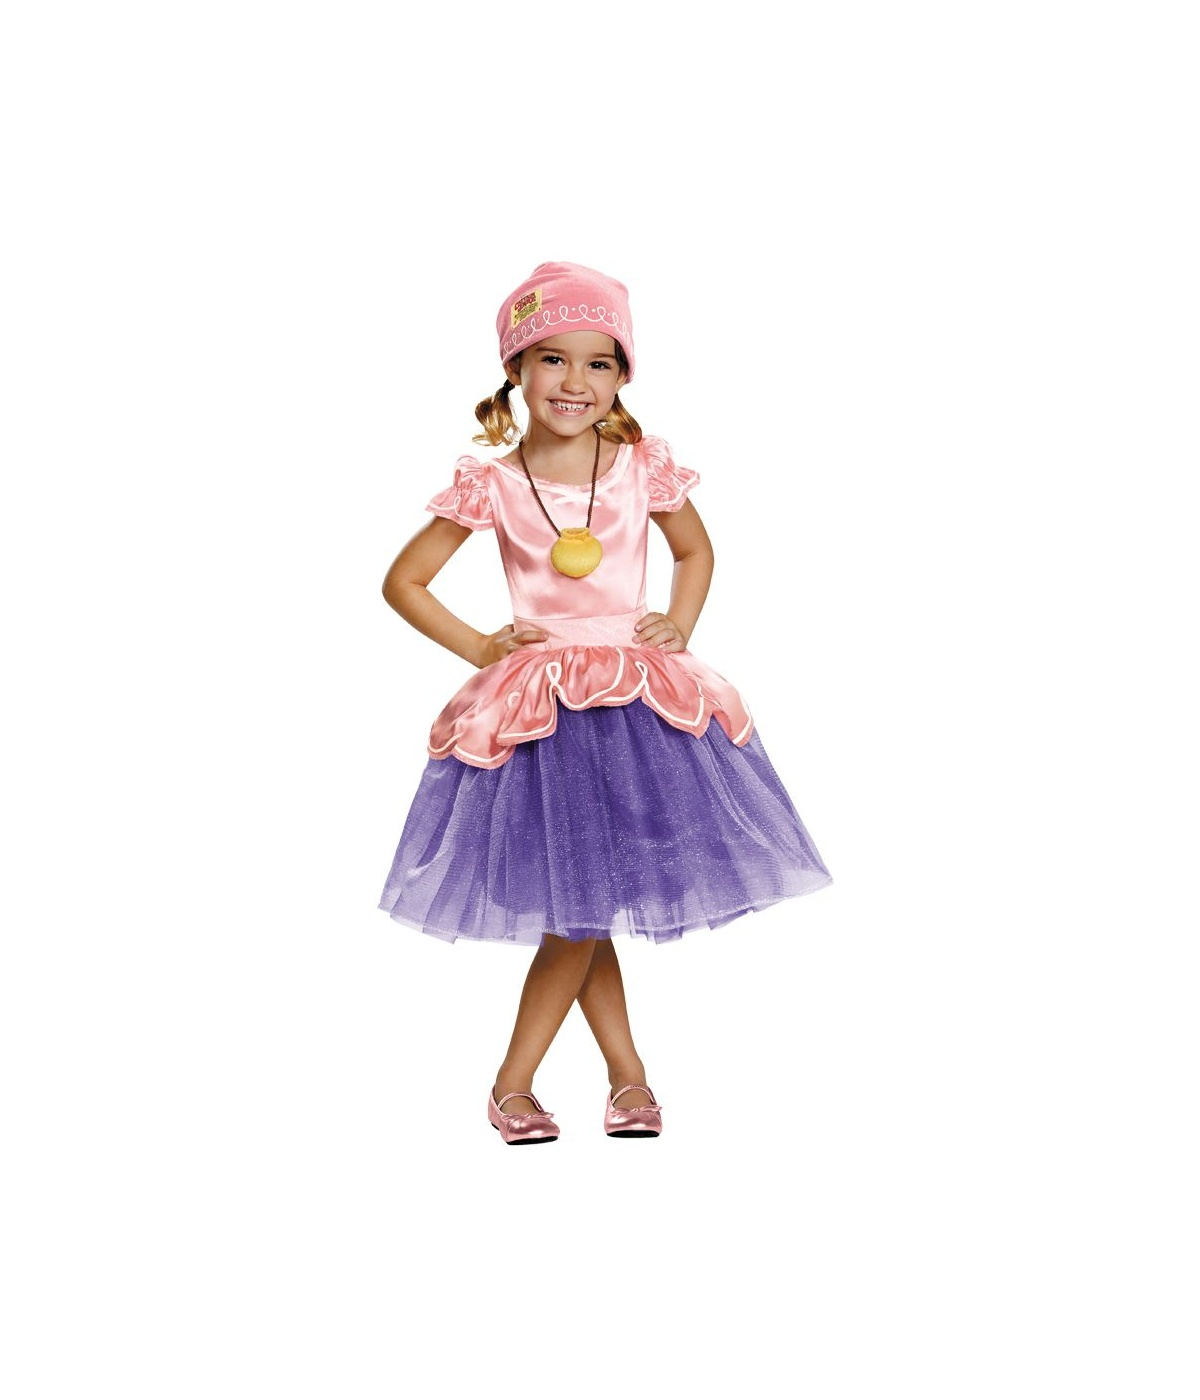 These pirate girl costumes will give your kids the traditional pirate look with a girly twist. From infant and toddler pirate girl costumes to teen Pirates of the Caribbean costumes, we have something for everyone.